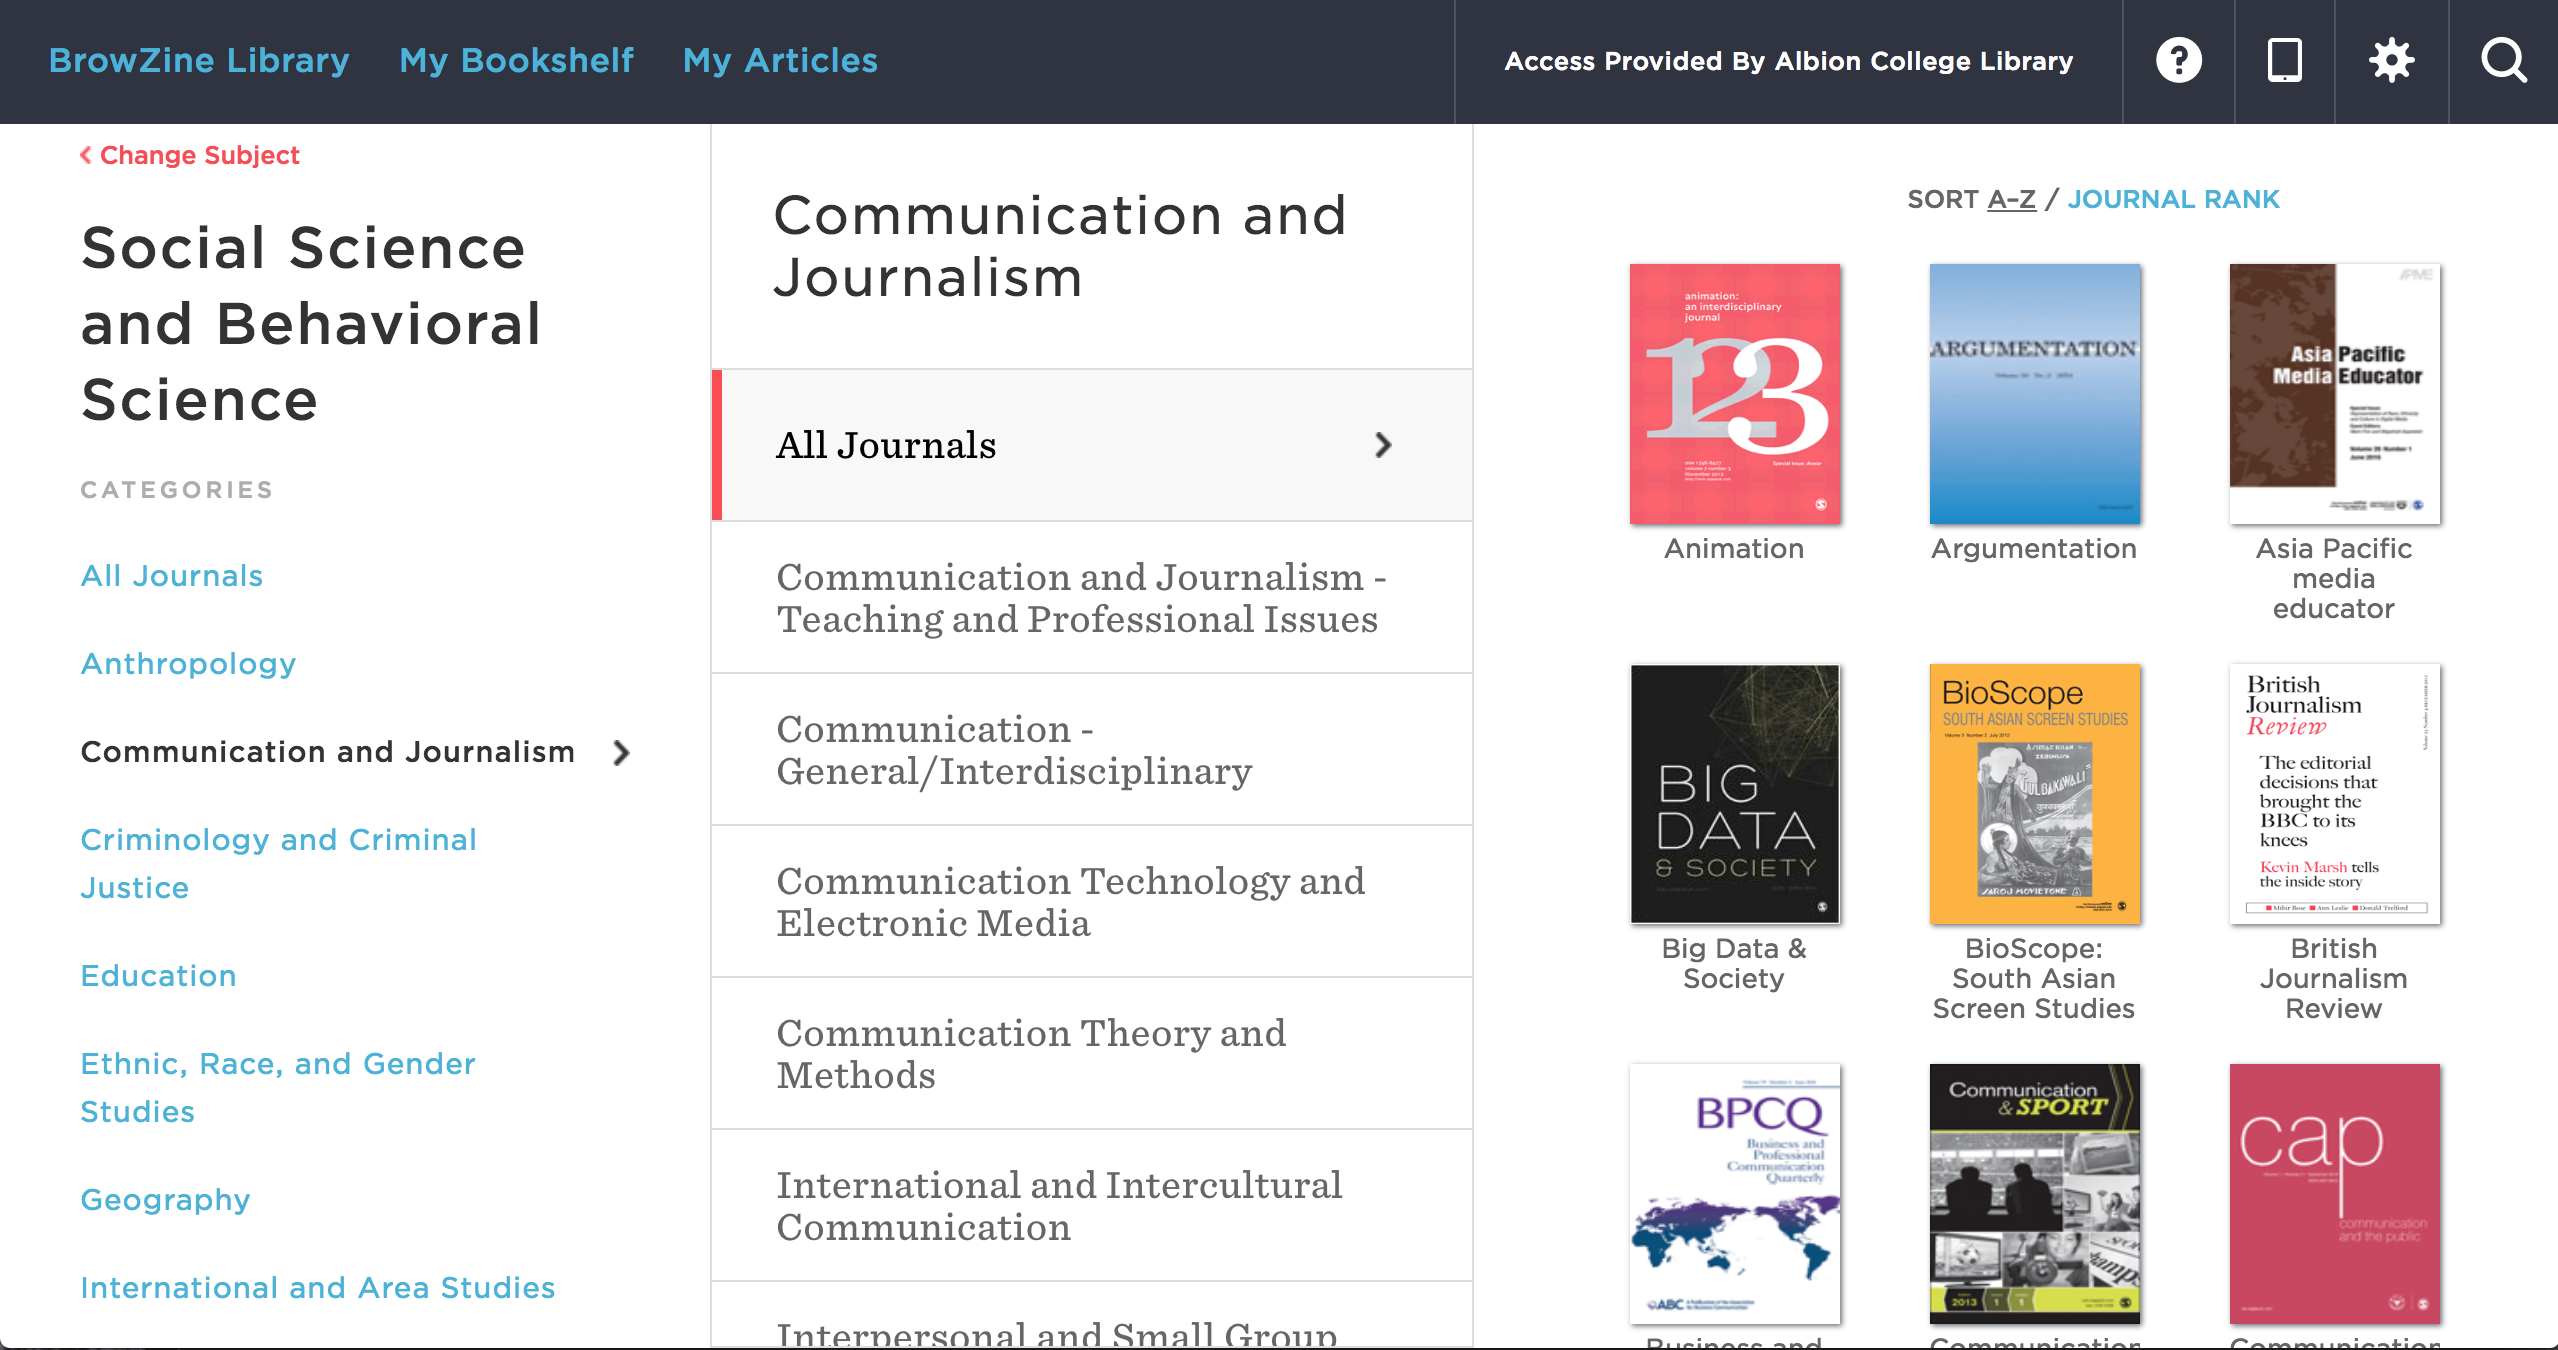 Communication Studies Journals in BrowZine